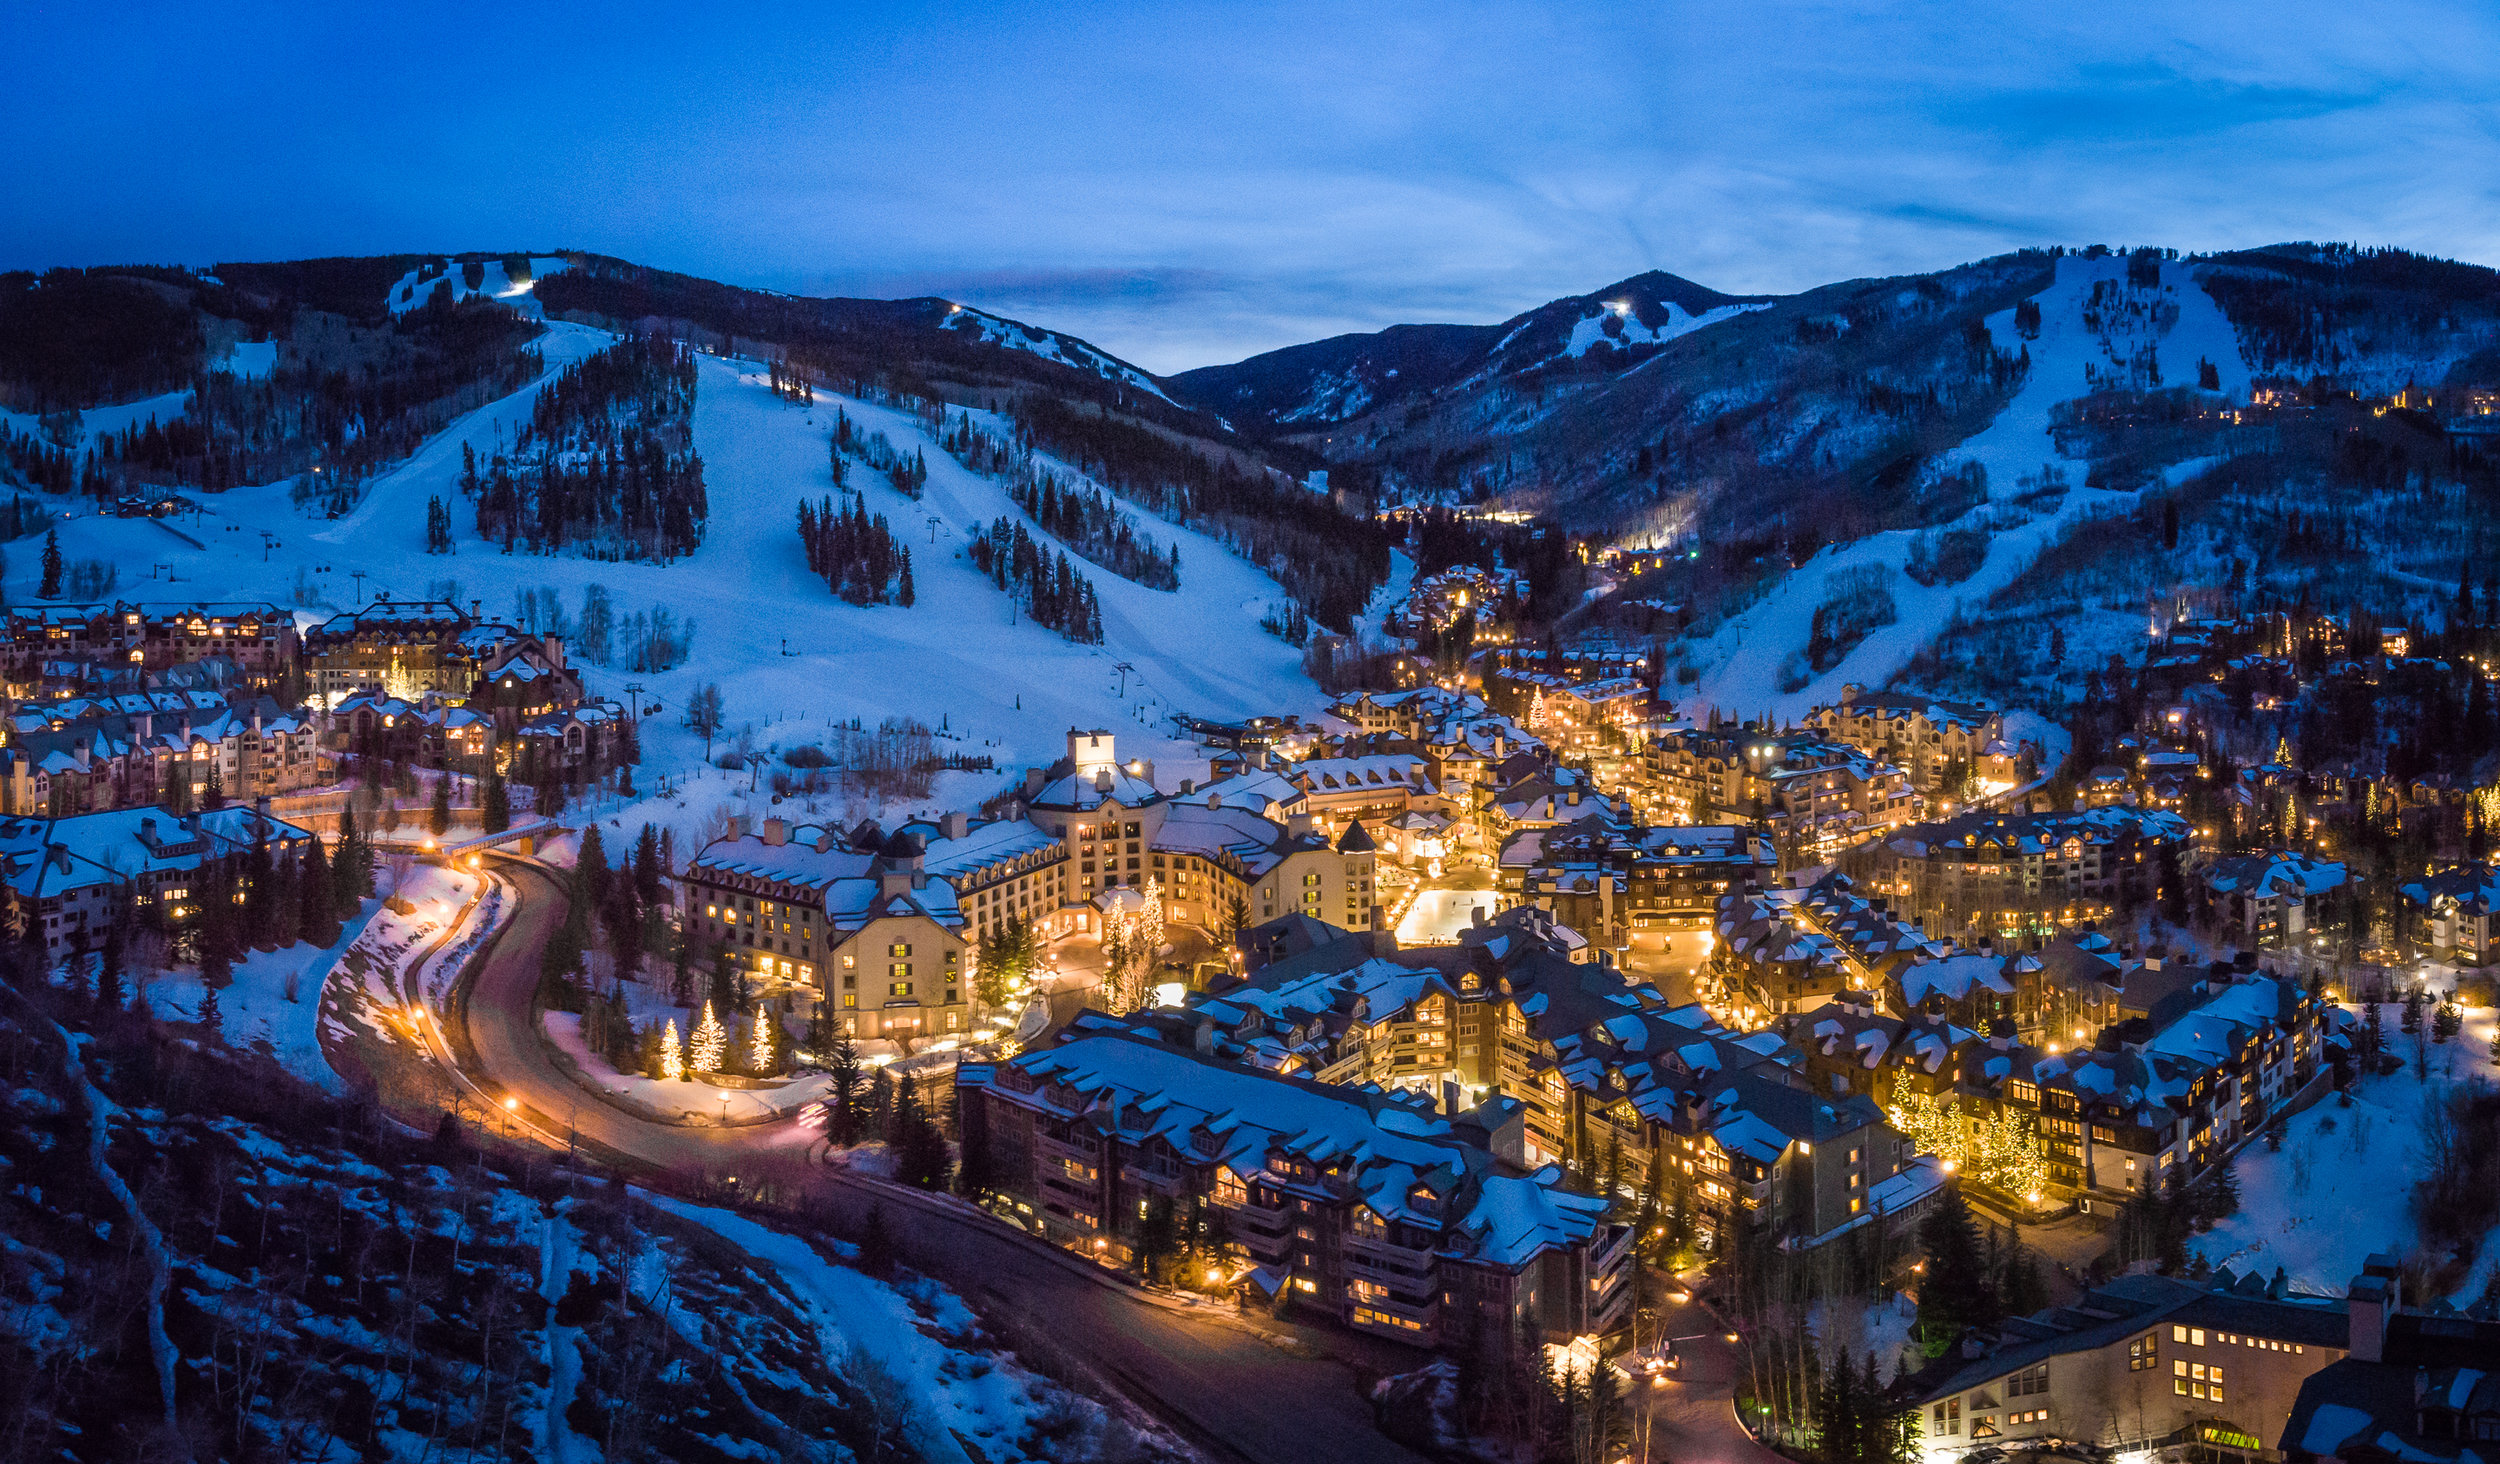 Beaver Creek Village, Colorado